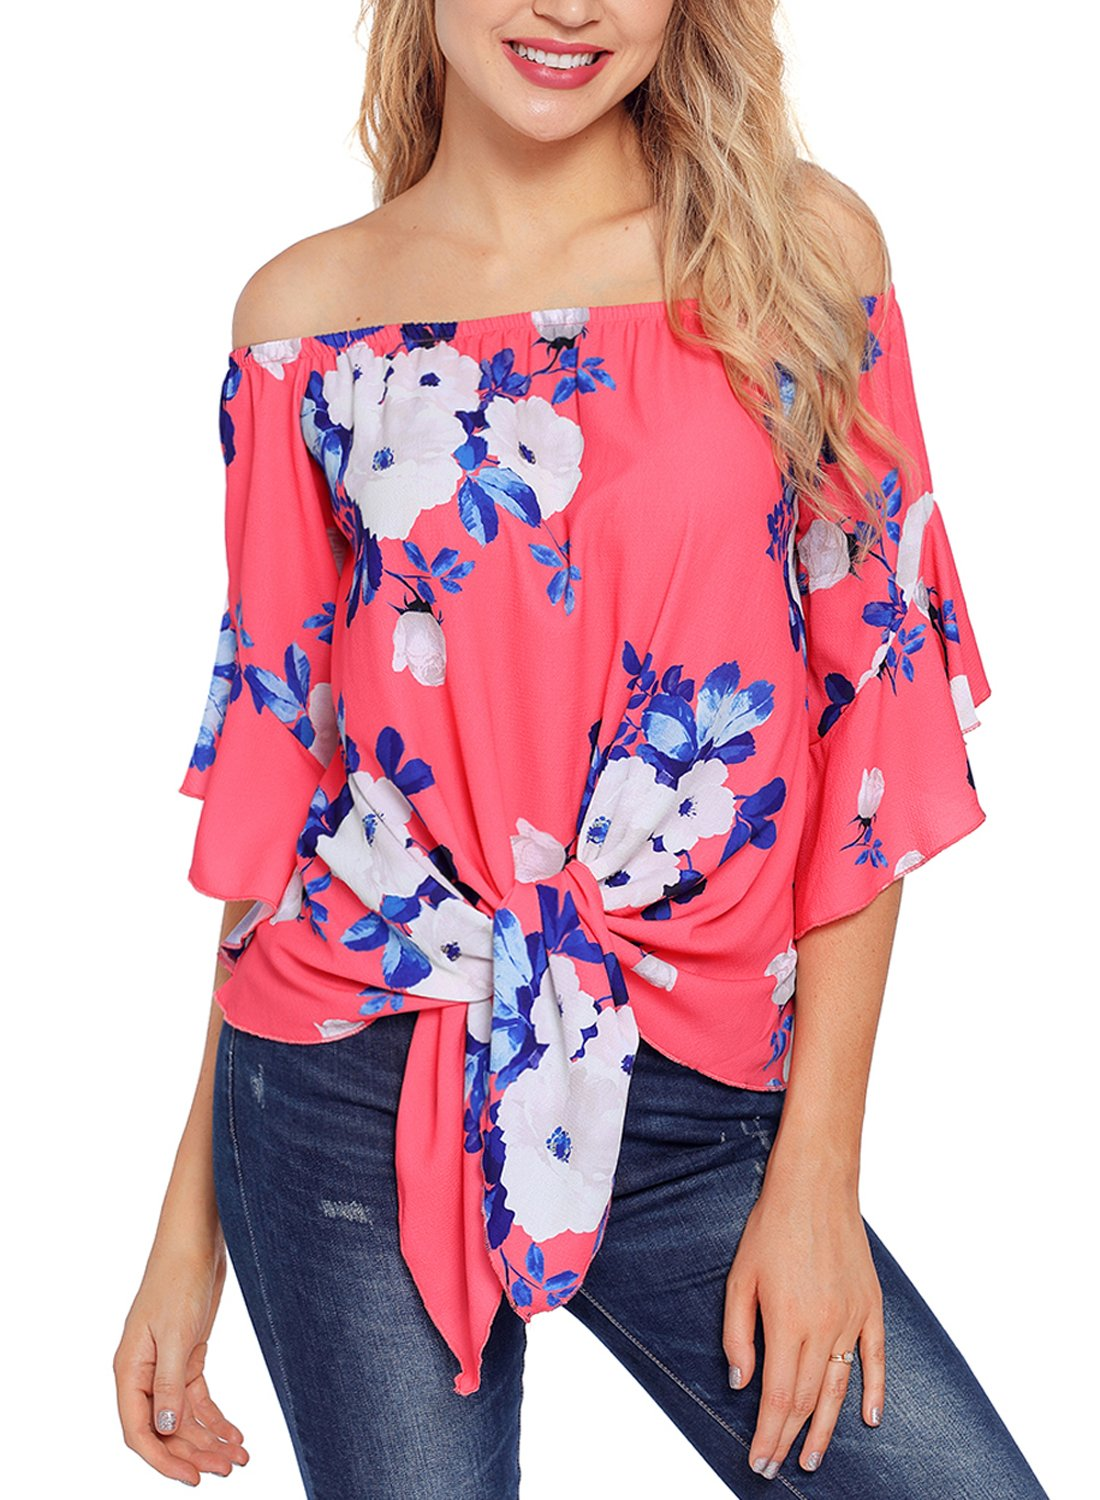 Asvivid Womens Summer Floral Print Off Shoulder Bell Sleeve Loose Office Tshirt Tops Plus Size X-Large Rosy